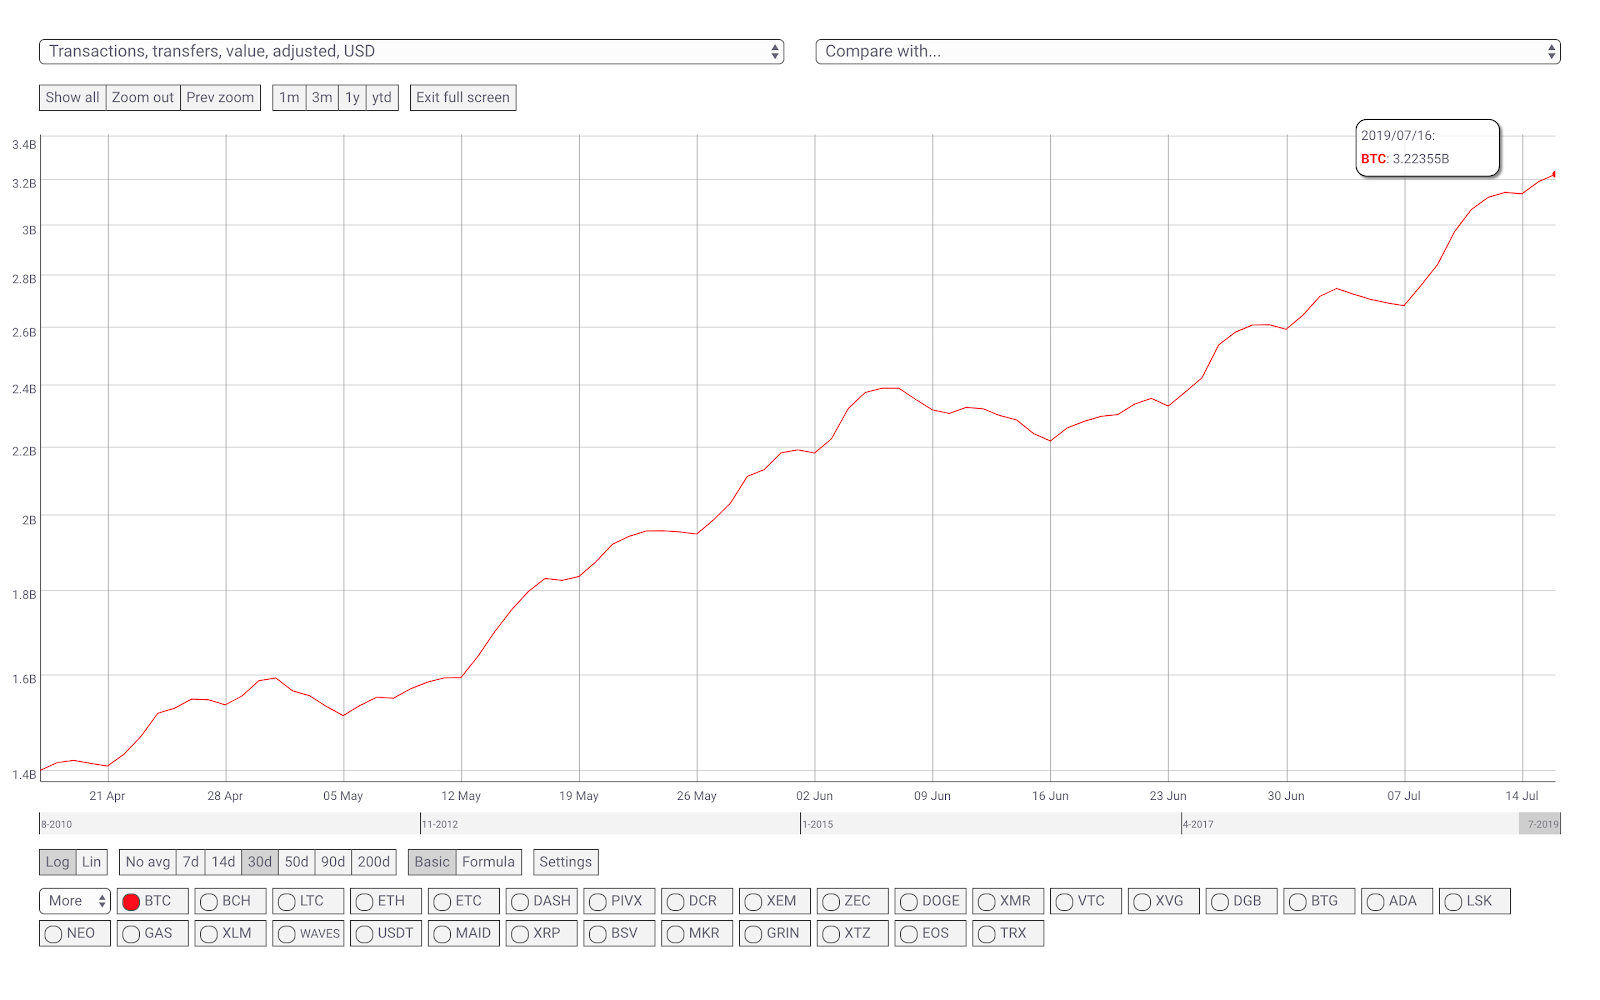 3-month chart for BTC transactions, transfers, value, adjusted, in USD